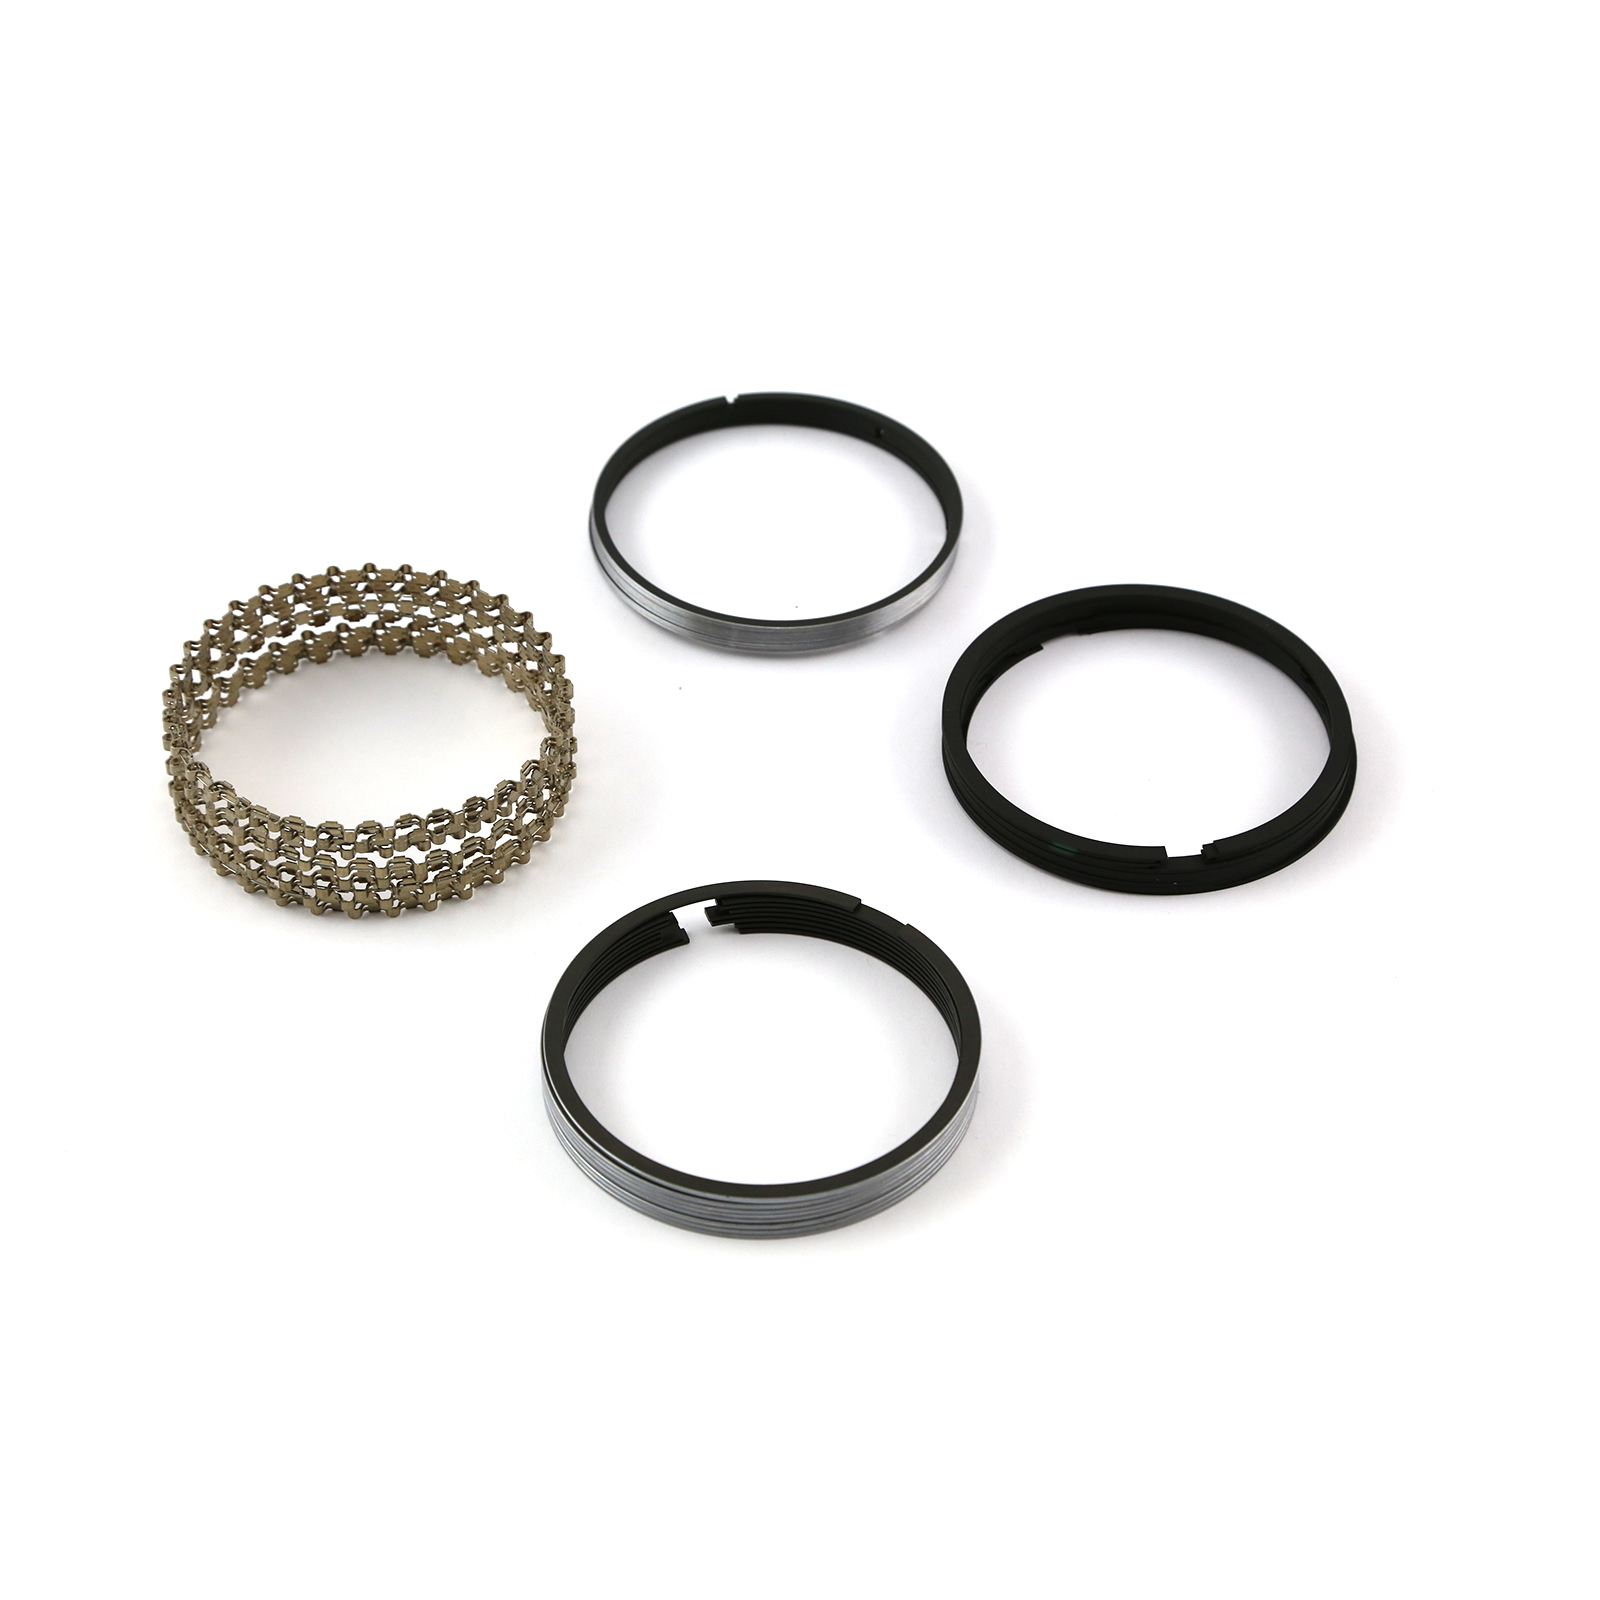 "4.020"" Bore - 1/16 - 1/16 - 3/16 Plasma Moly Piston Ring Set"